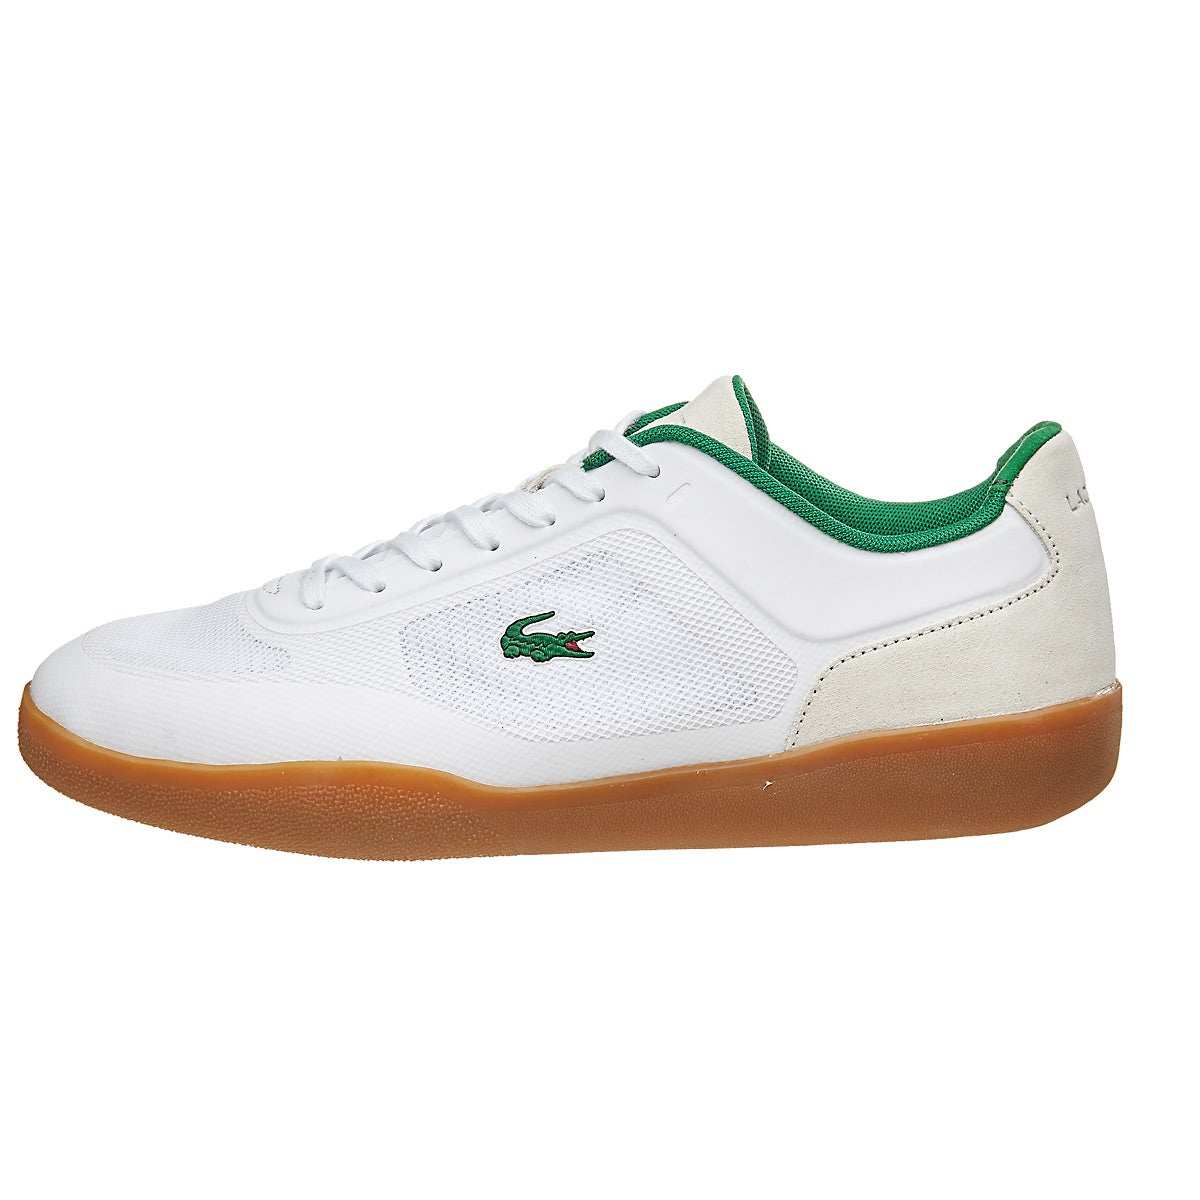 Images Of White Tennis Shoes